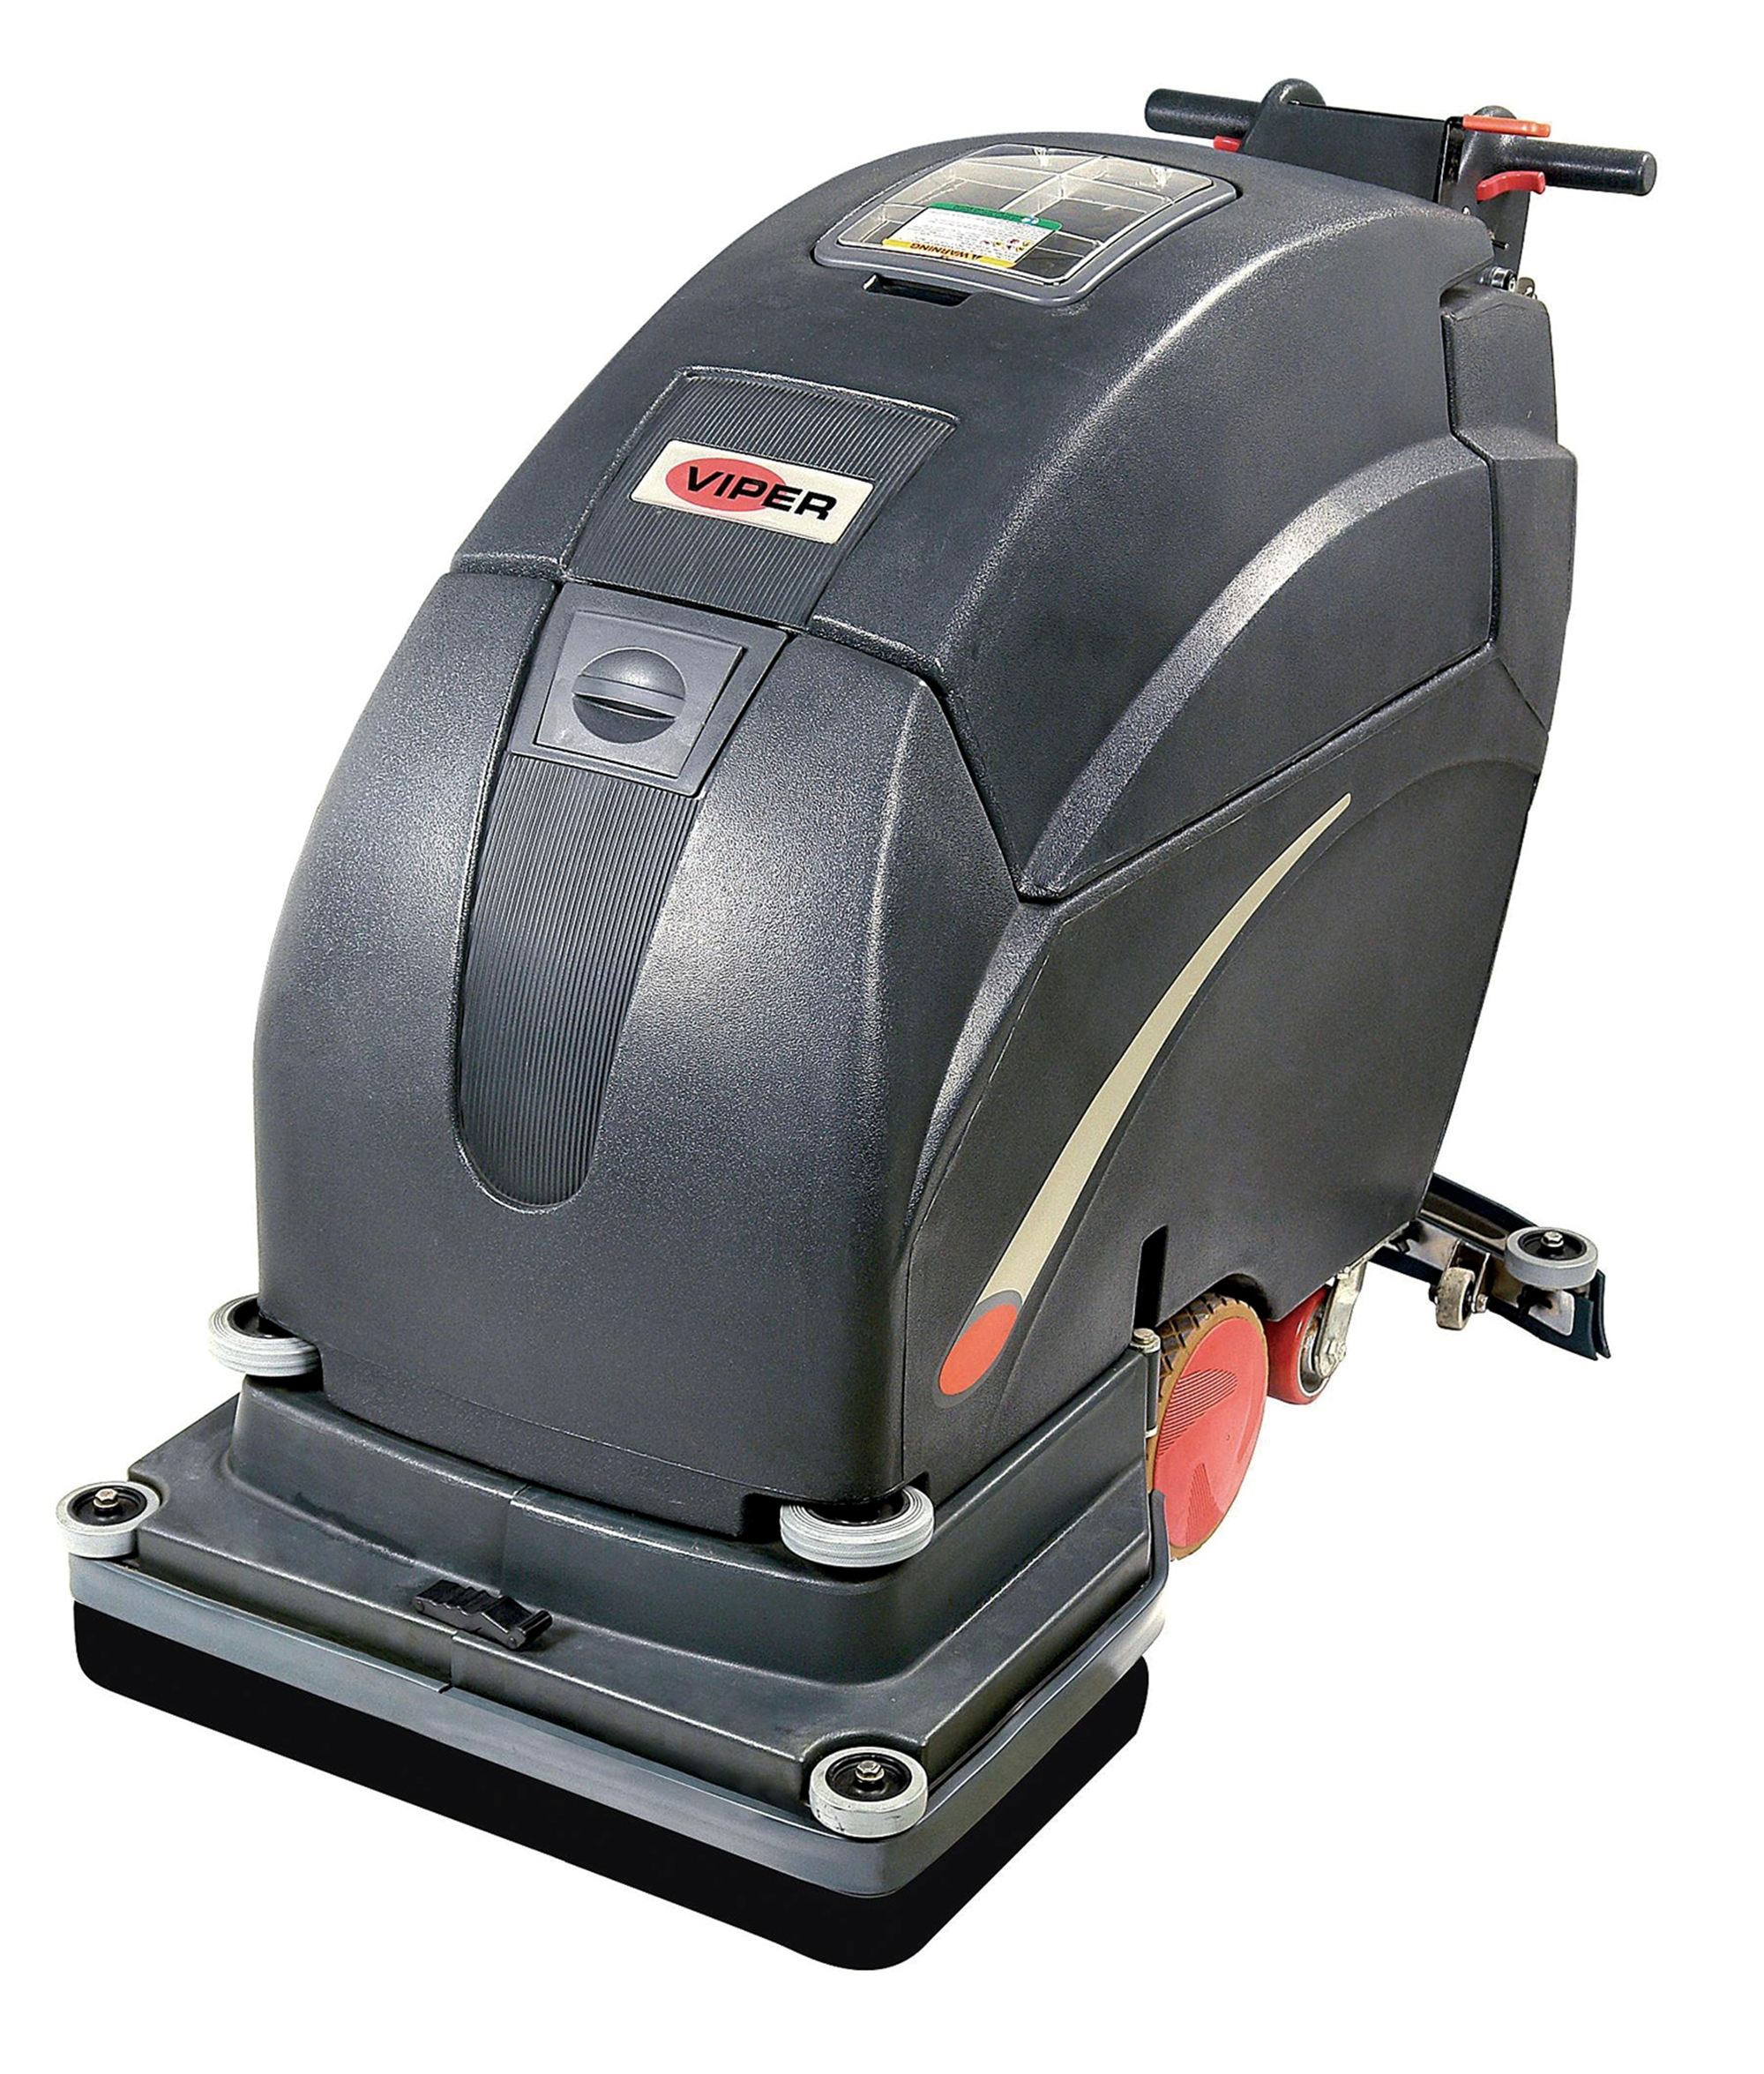 FANG 28 AUTOMATIC SCRUBBER W   Nilfisk Official Website